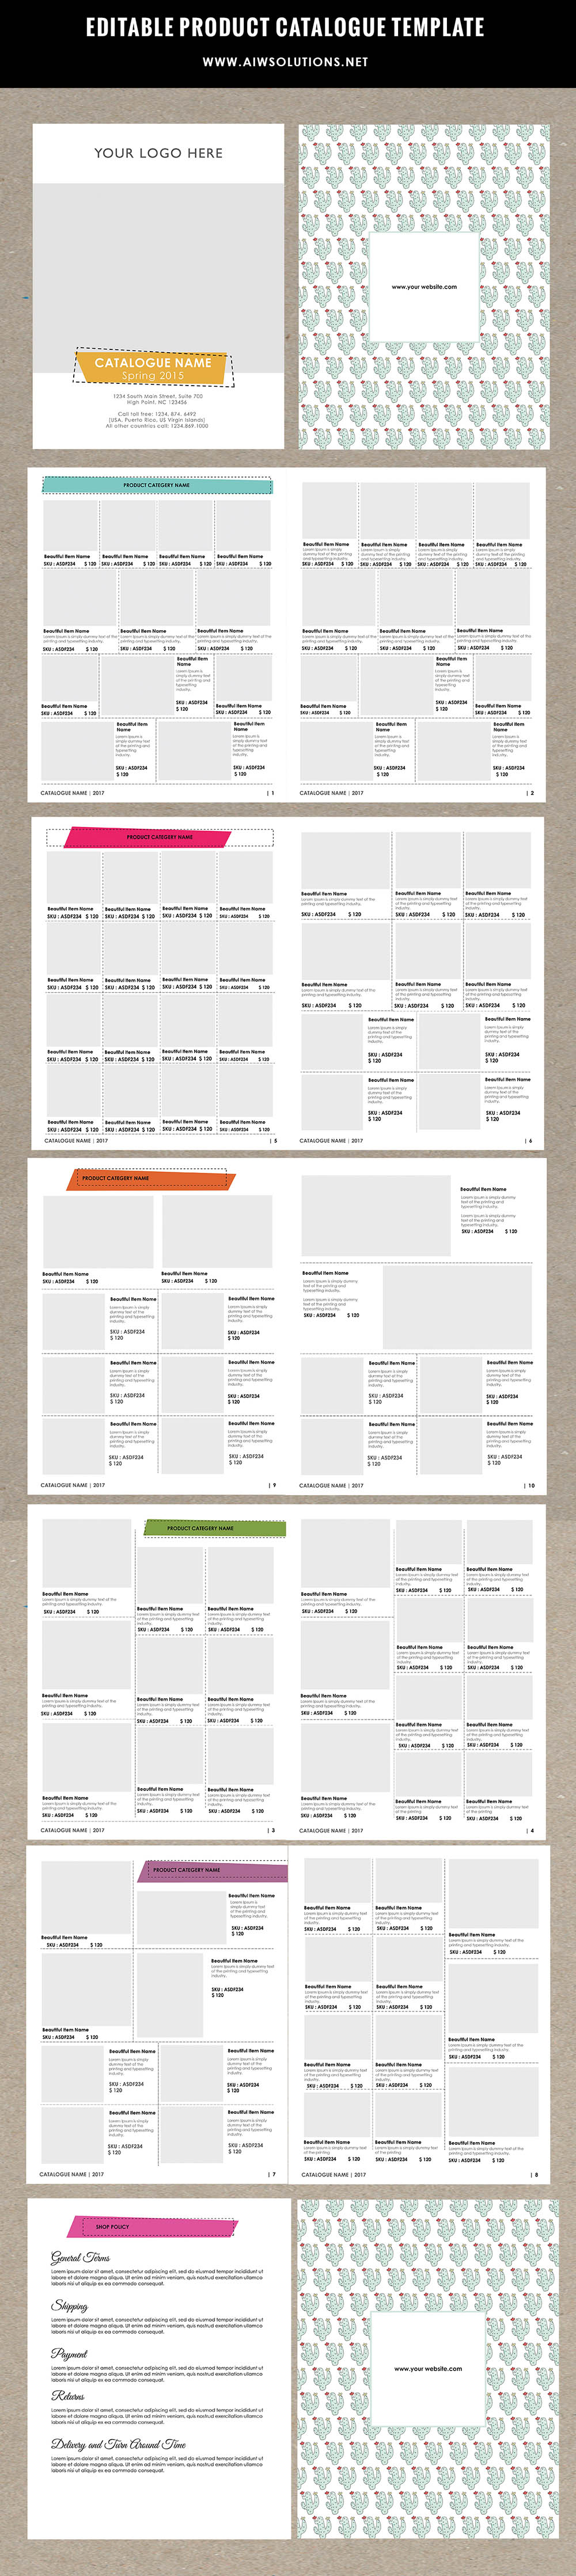 product brochure template - product catalog template for hat catalog shoe catalog